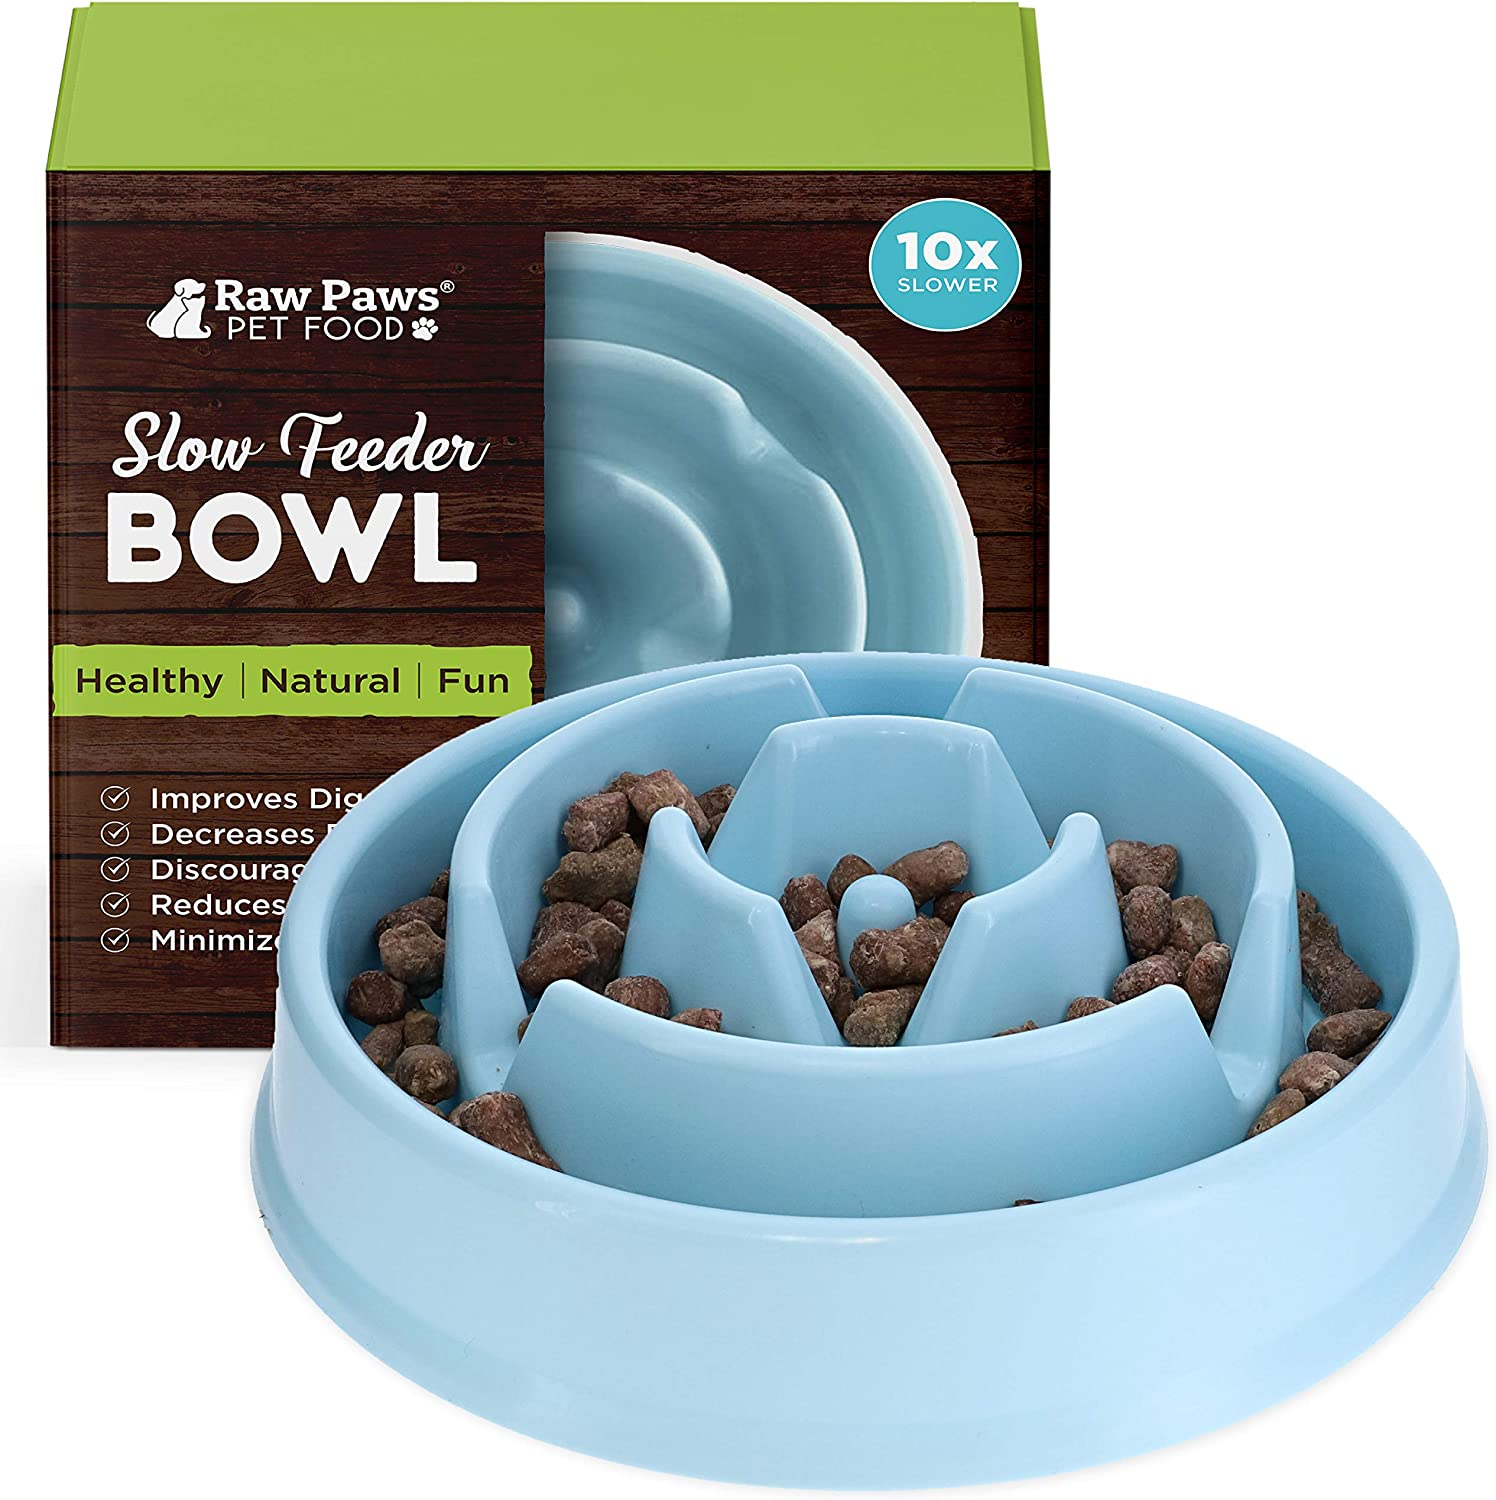 Raw Paws Slow Feeder Dog Bowl & Cat Slow Feeder Bowl - Maze Dog Bowl to Slow Down Eating - Dog Bowl for Fast Eaters - Dog Puzzle Bowl for Slower Eating - Slow Drink Water Bowl for Dogs